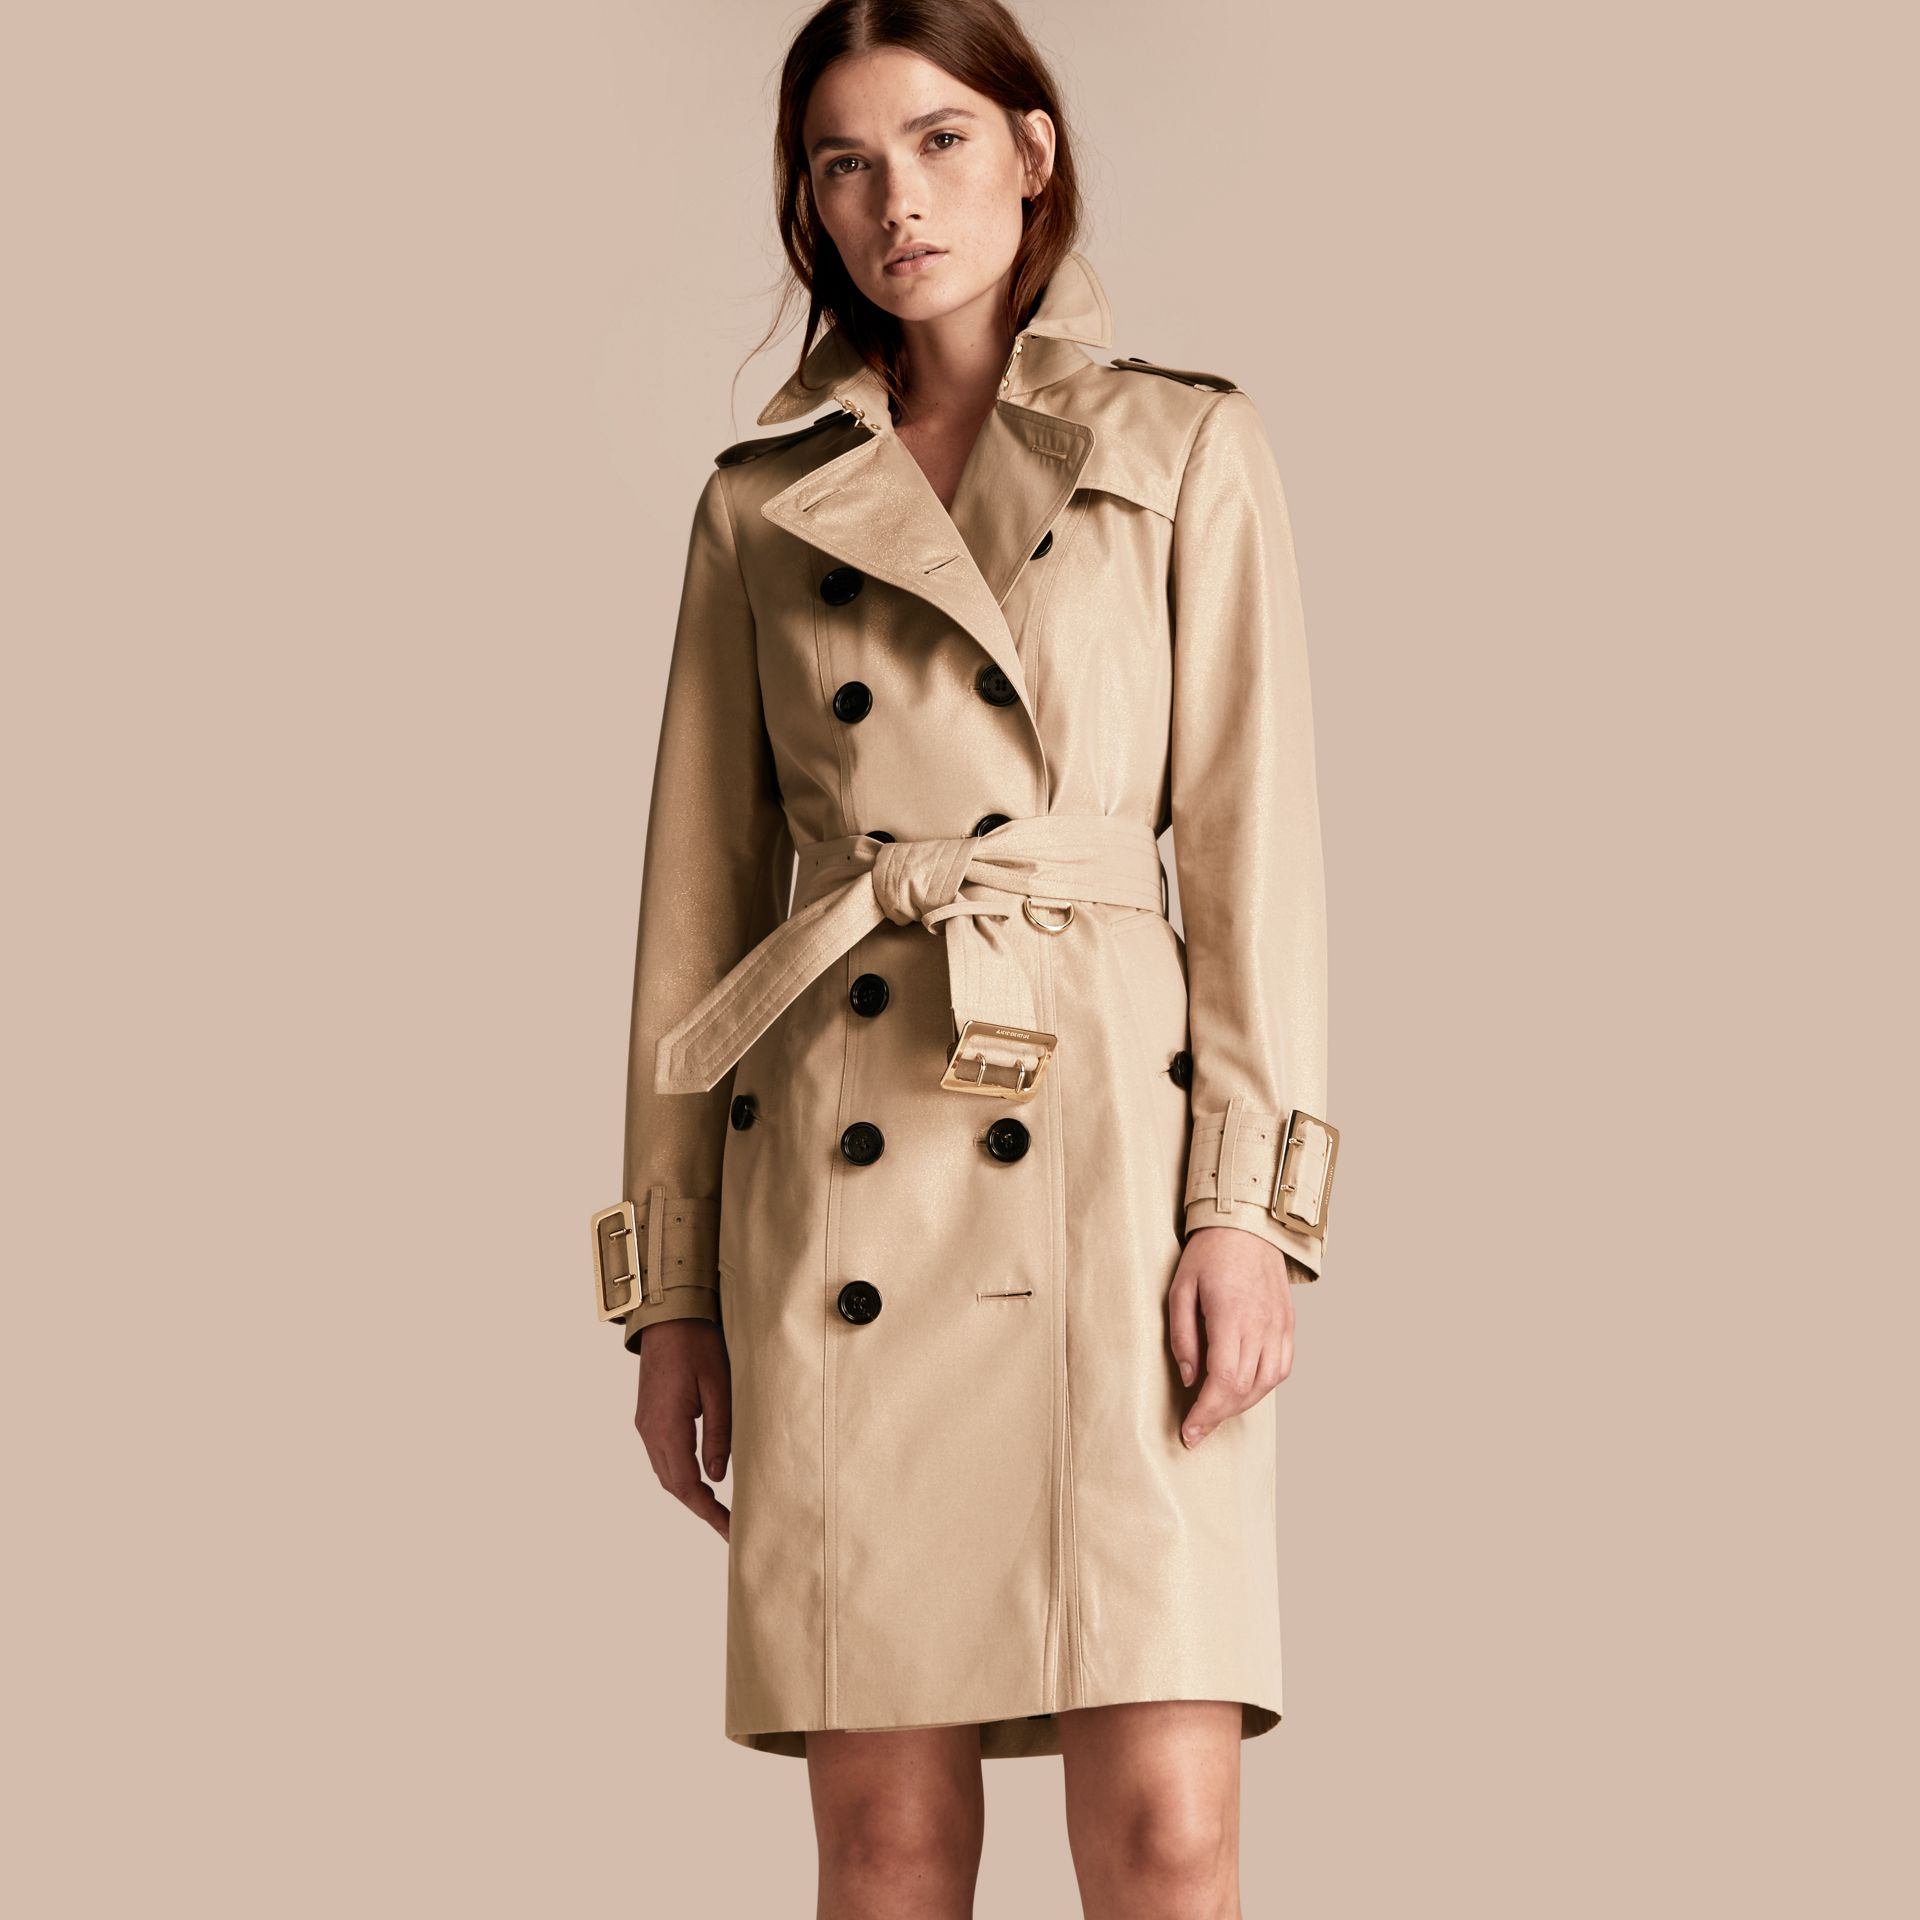 Nude gold Metallic Cotton Gabardine Trench Coat with Oversize Buckle Detail - gallery image 1